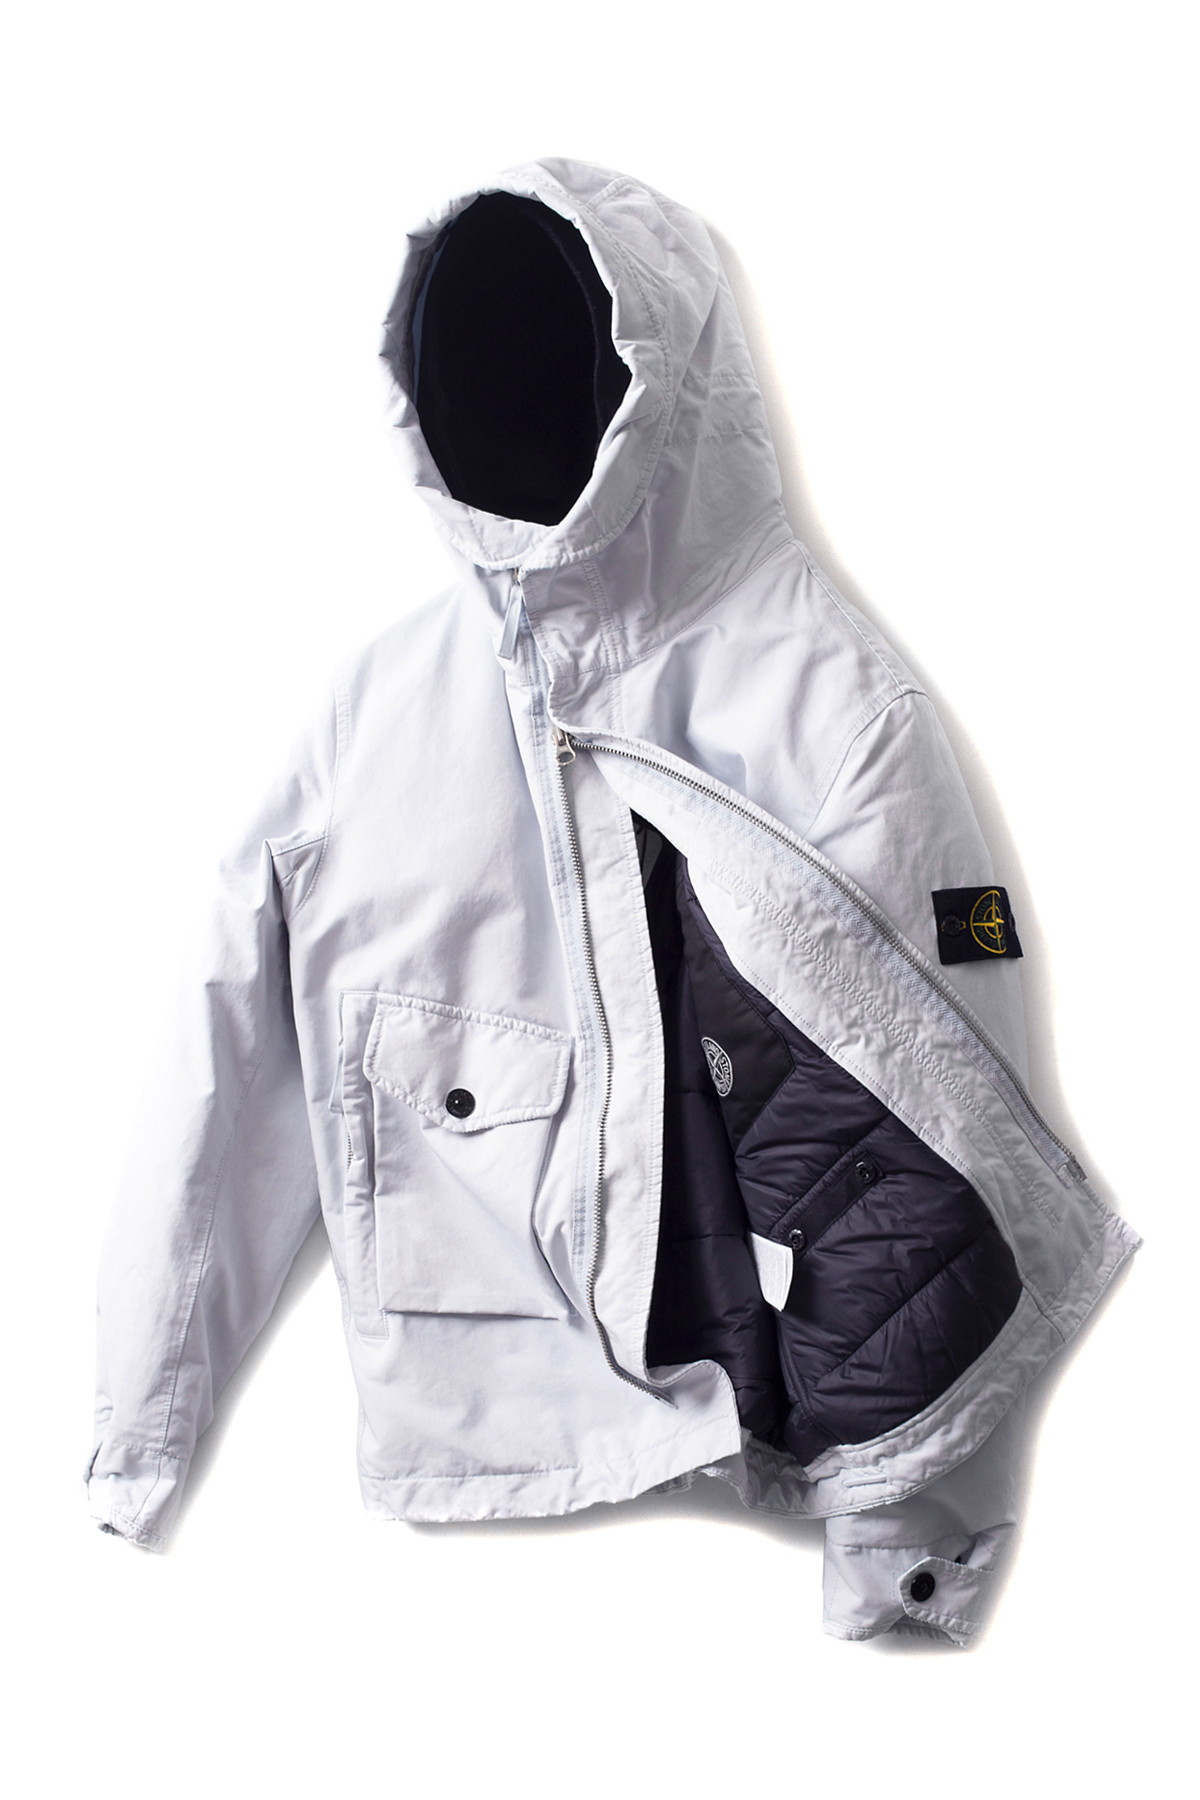 Stone Island : David - TC With Primaloft (Grey)